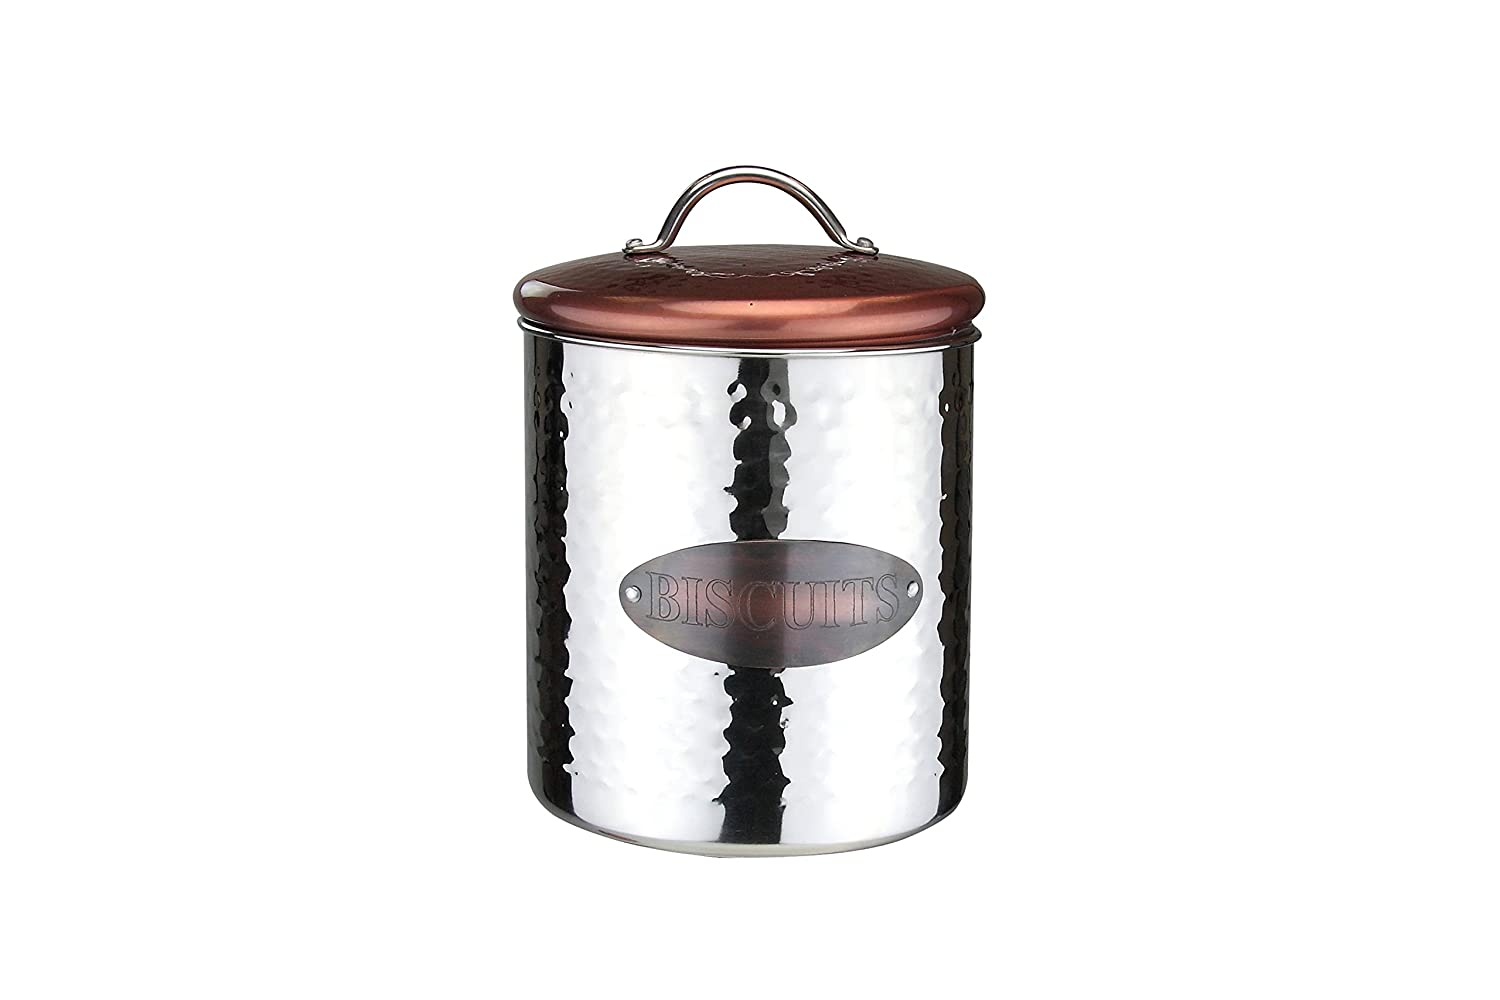 Apollo Biscuits Canister, Stainless Steel, Copper/Silver 4070